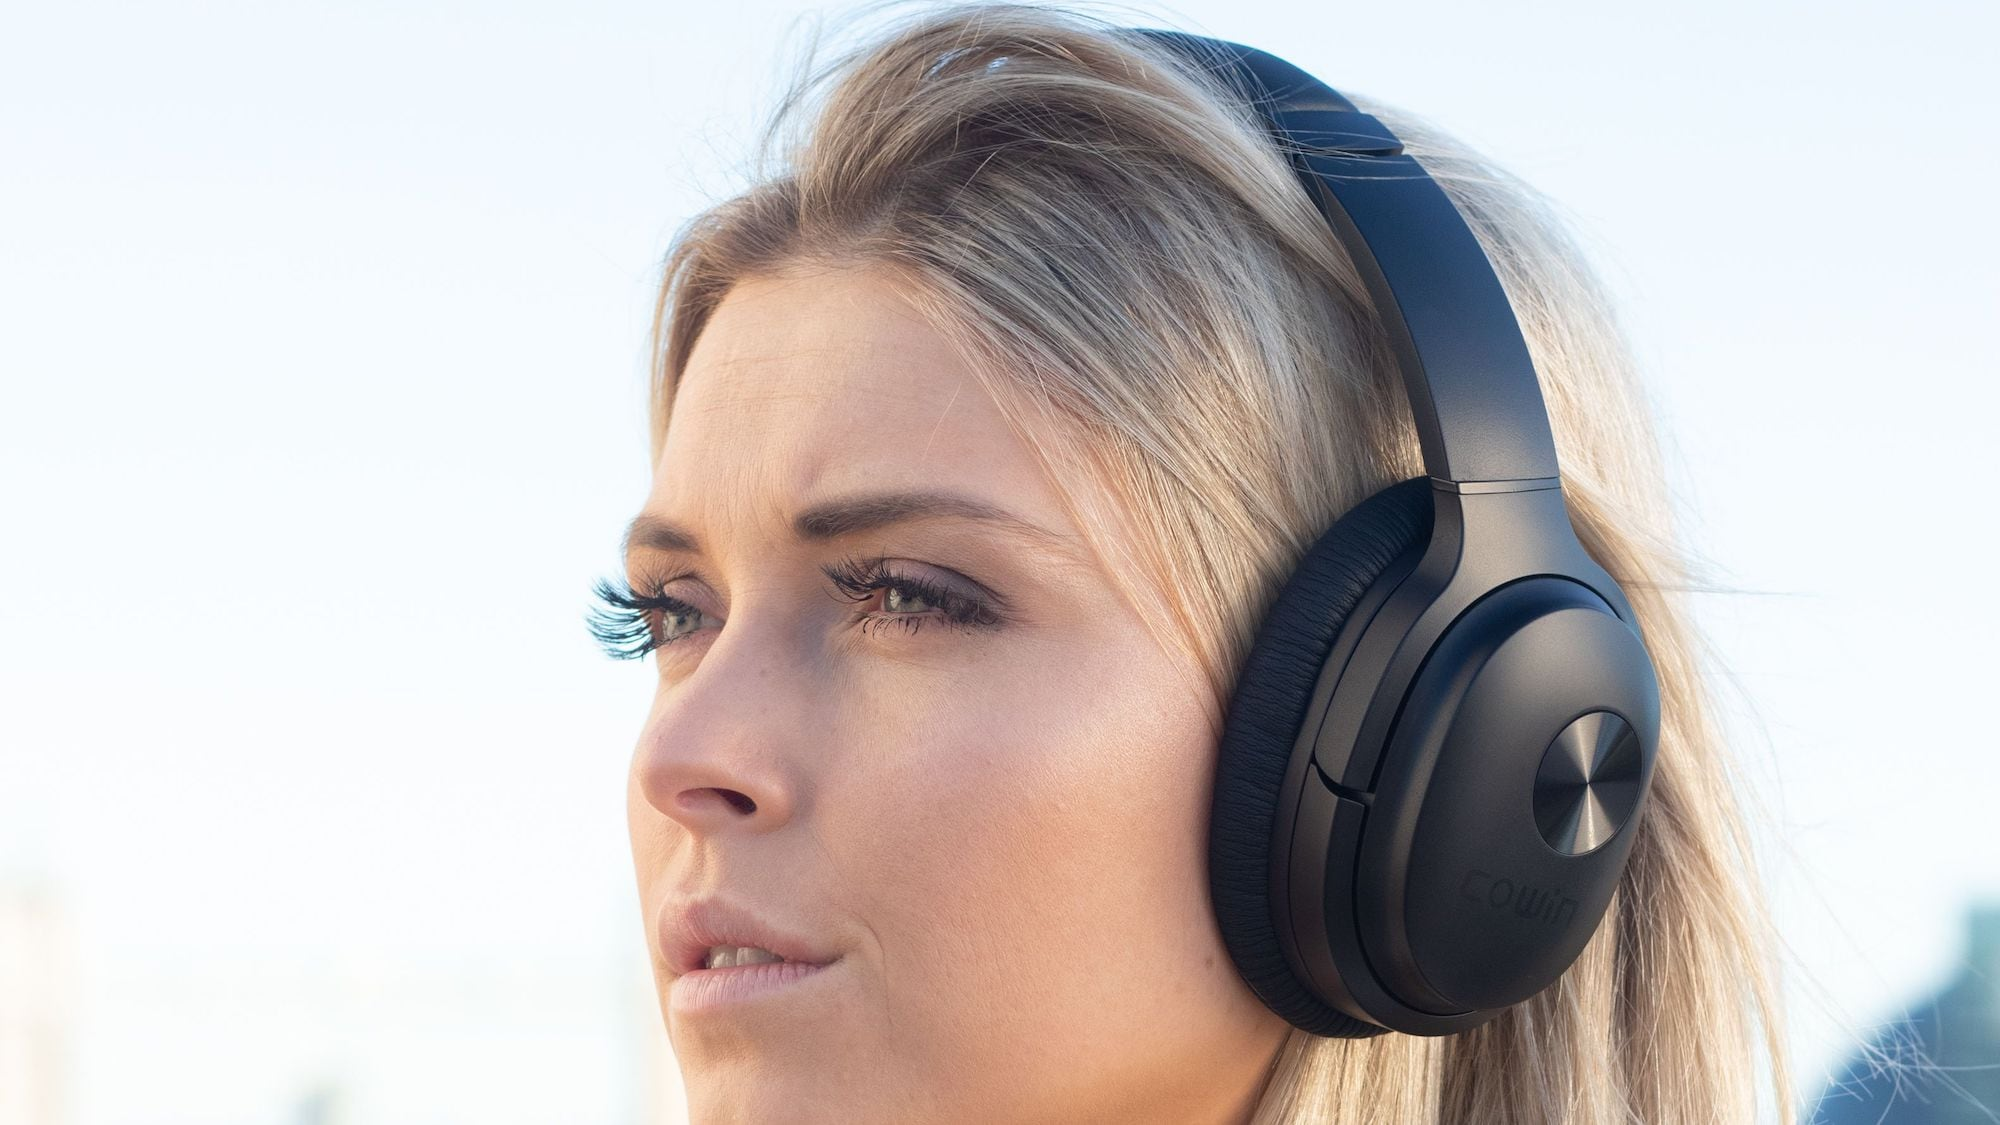 COWIN SE7 Bluetooth Wireless Headphones use professional ANC technology